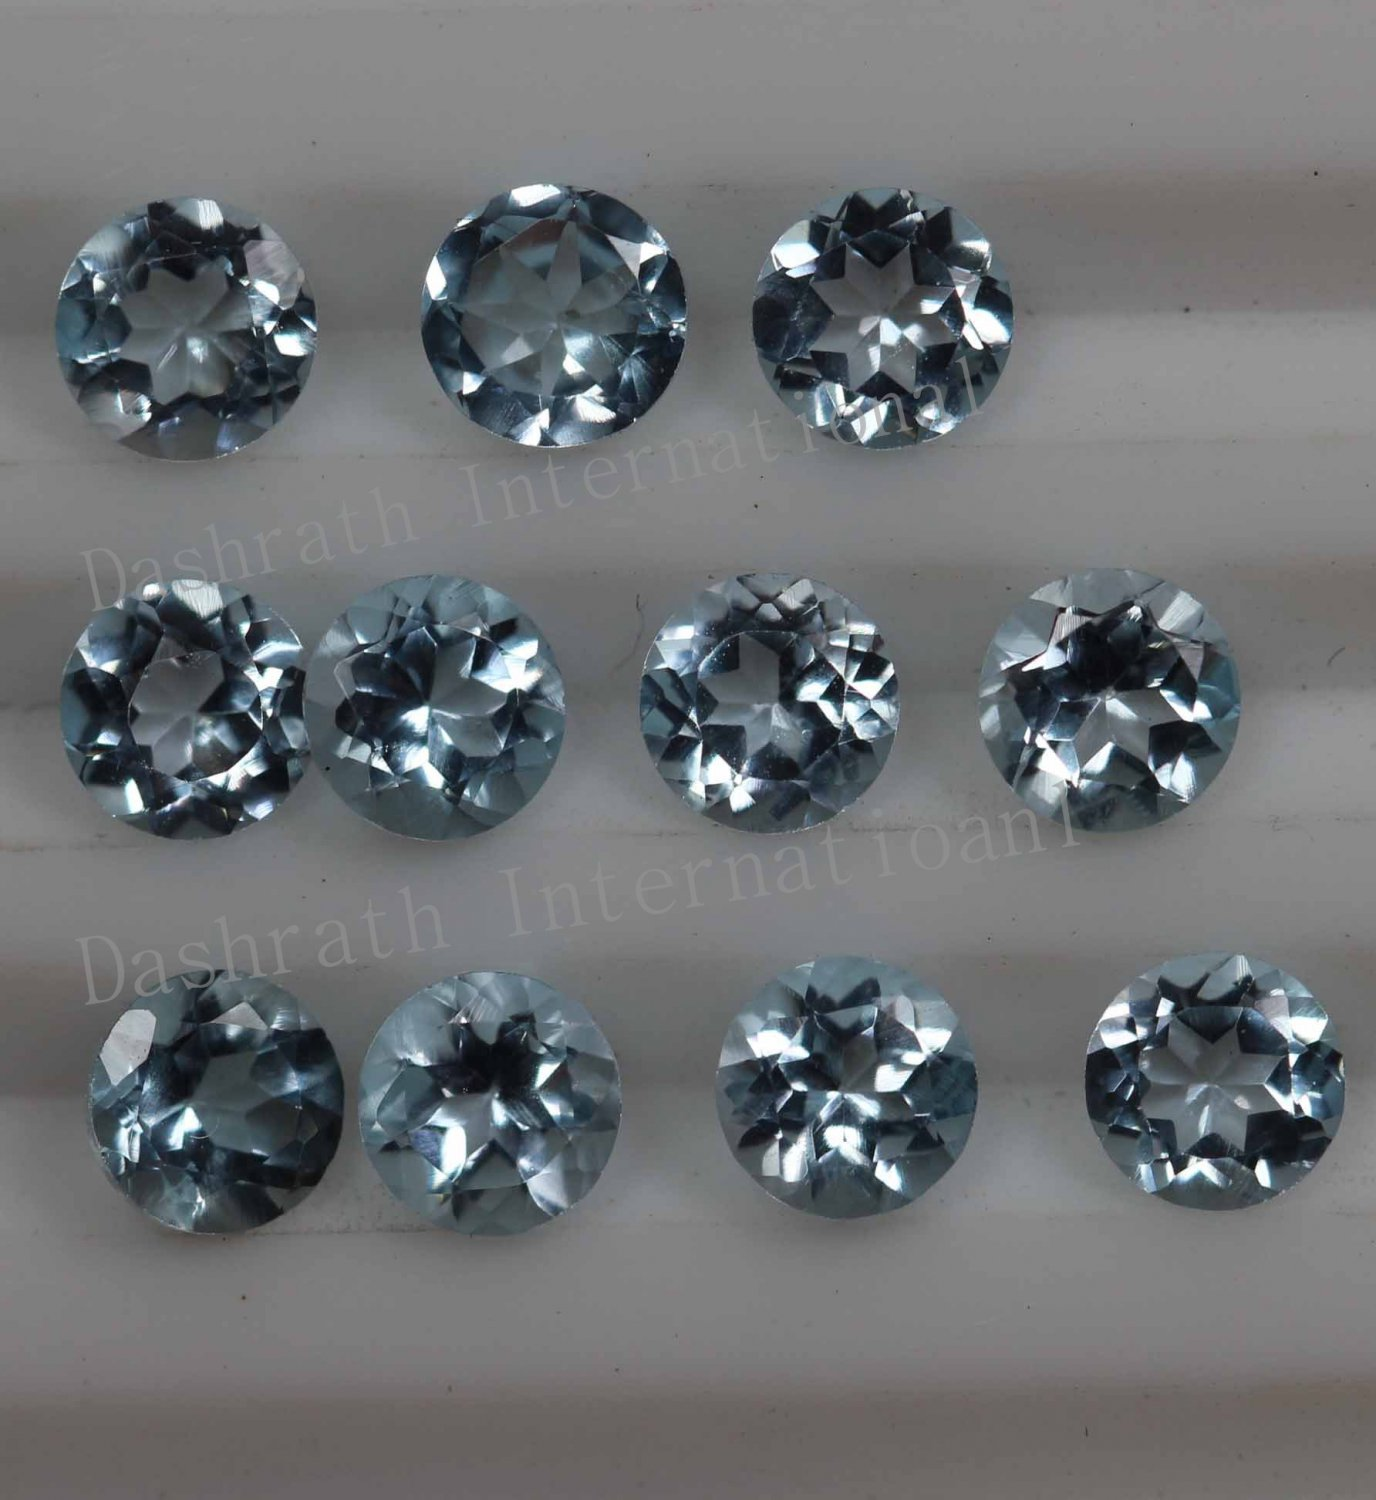 7mmNatural Sky Blue Topaz Faceted Cut Round 50 Pieces Lot Blue Color  Top Quality Loose Gemstone